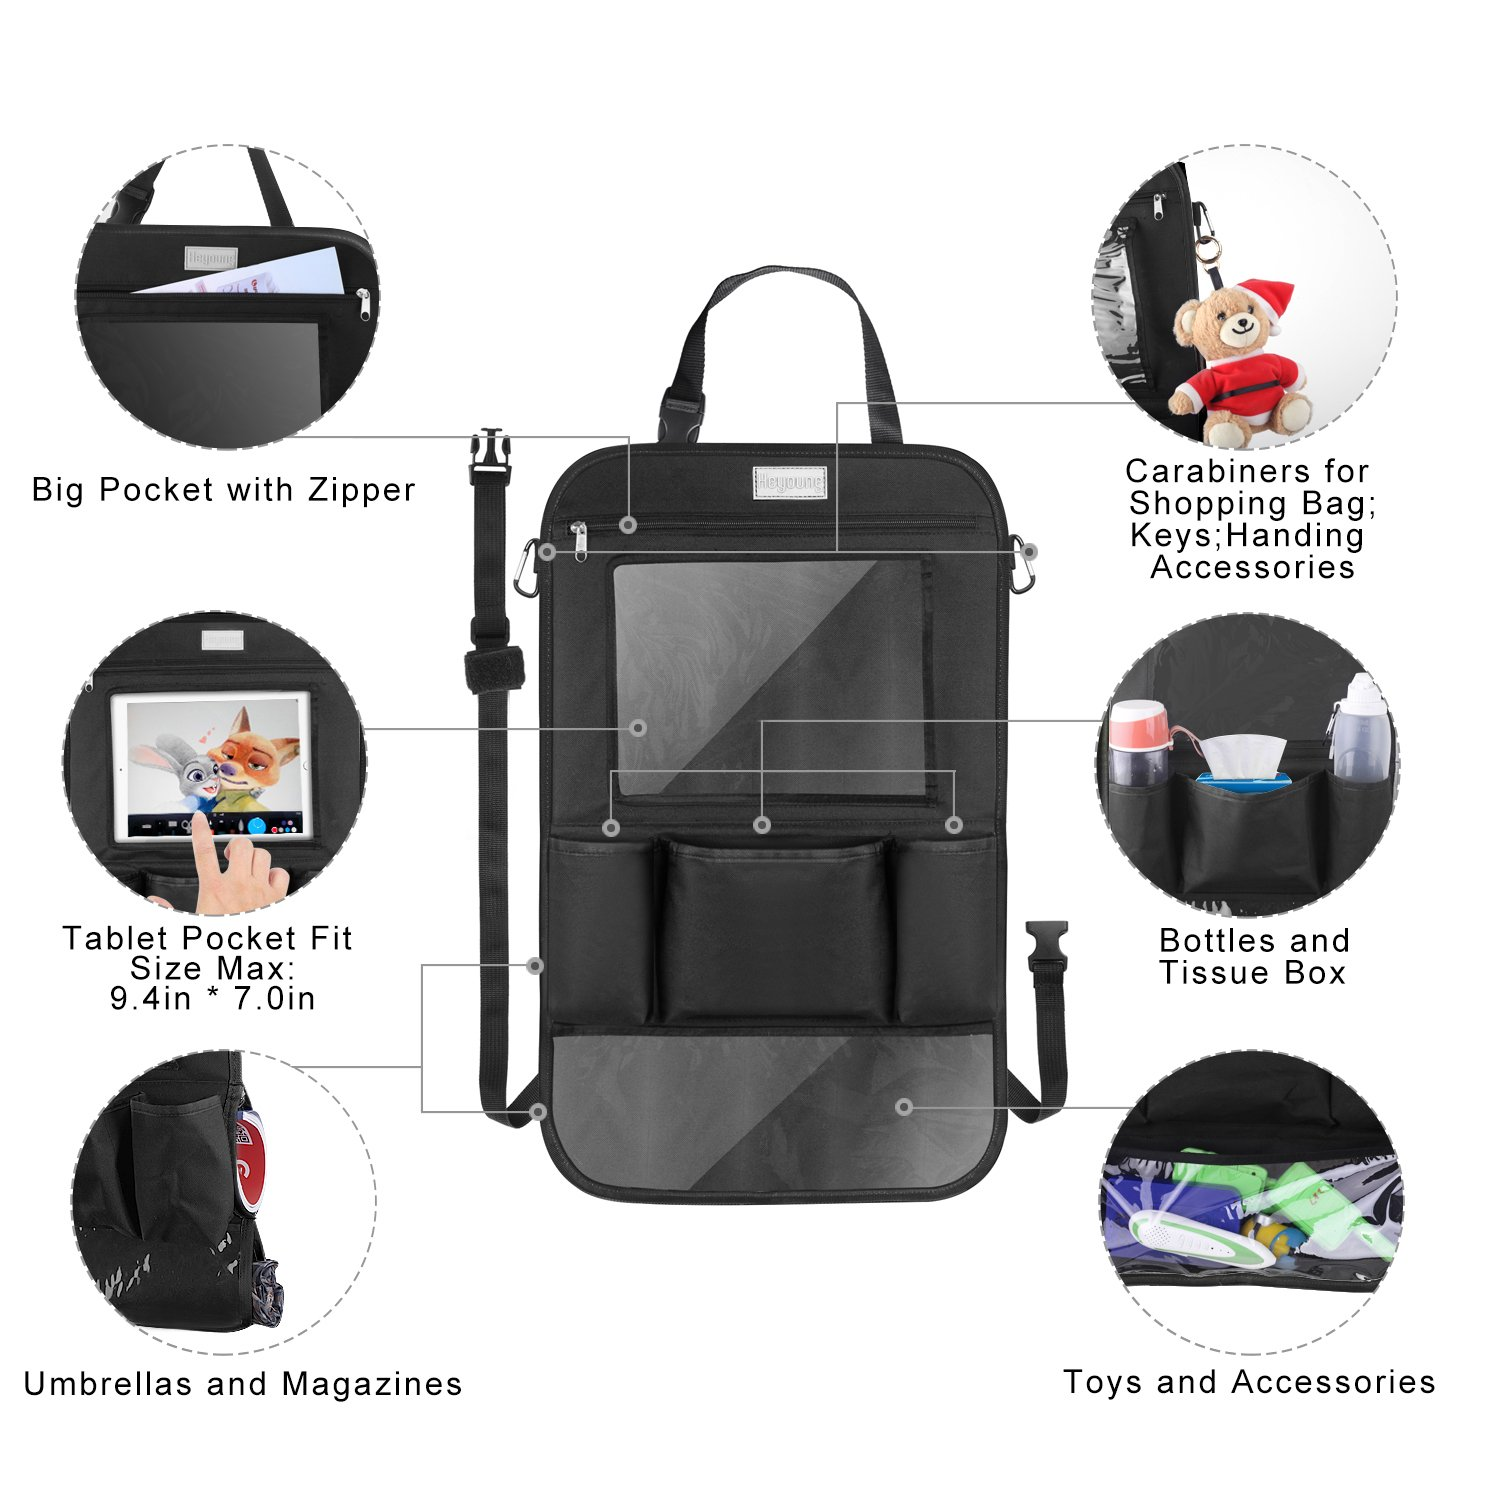 Luggage & Bags New Car Seatback Thermal Cooler Bag Organizer Box Fabric Storage Hanging Bag Waterproof Bag Insulated Lunch Bag For Women Men Shrink-Proof